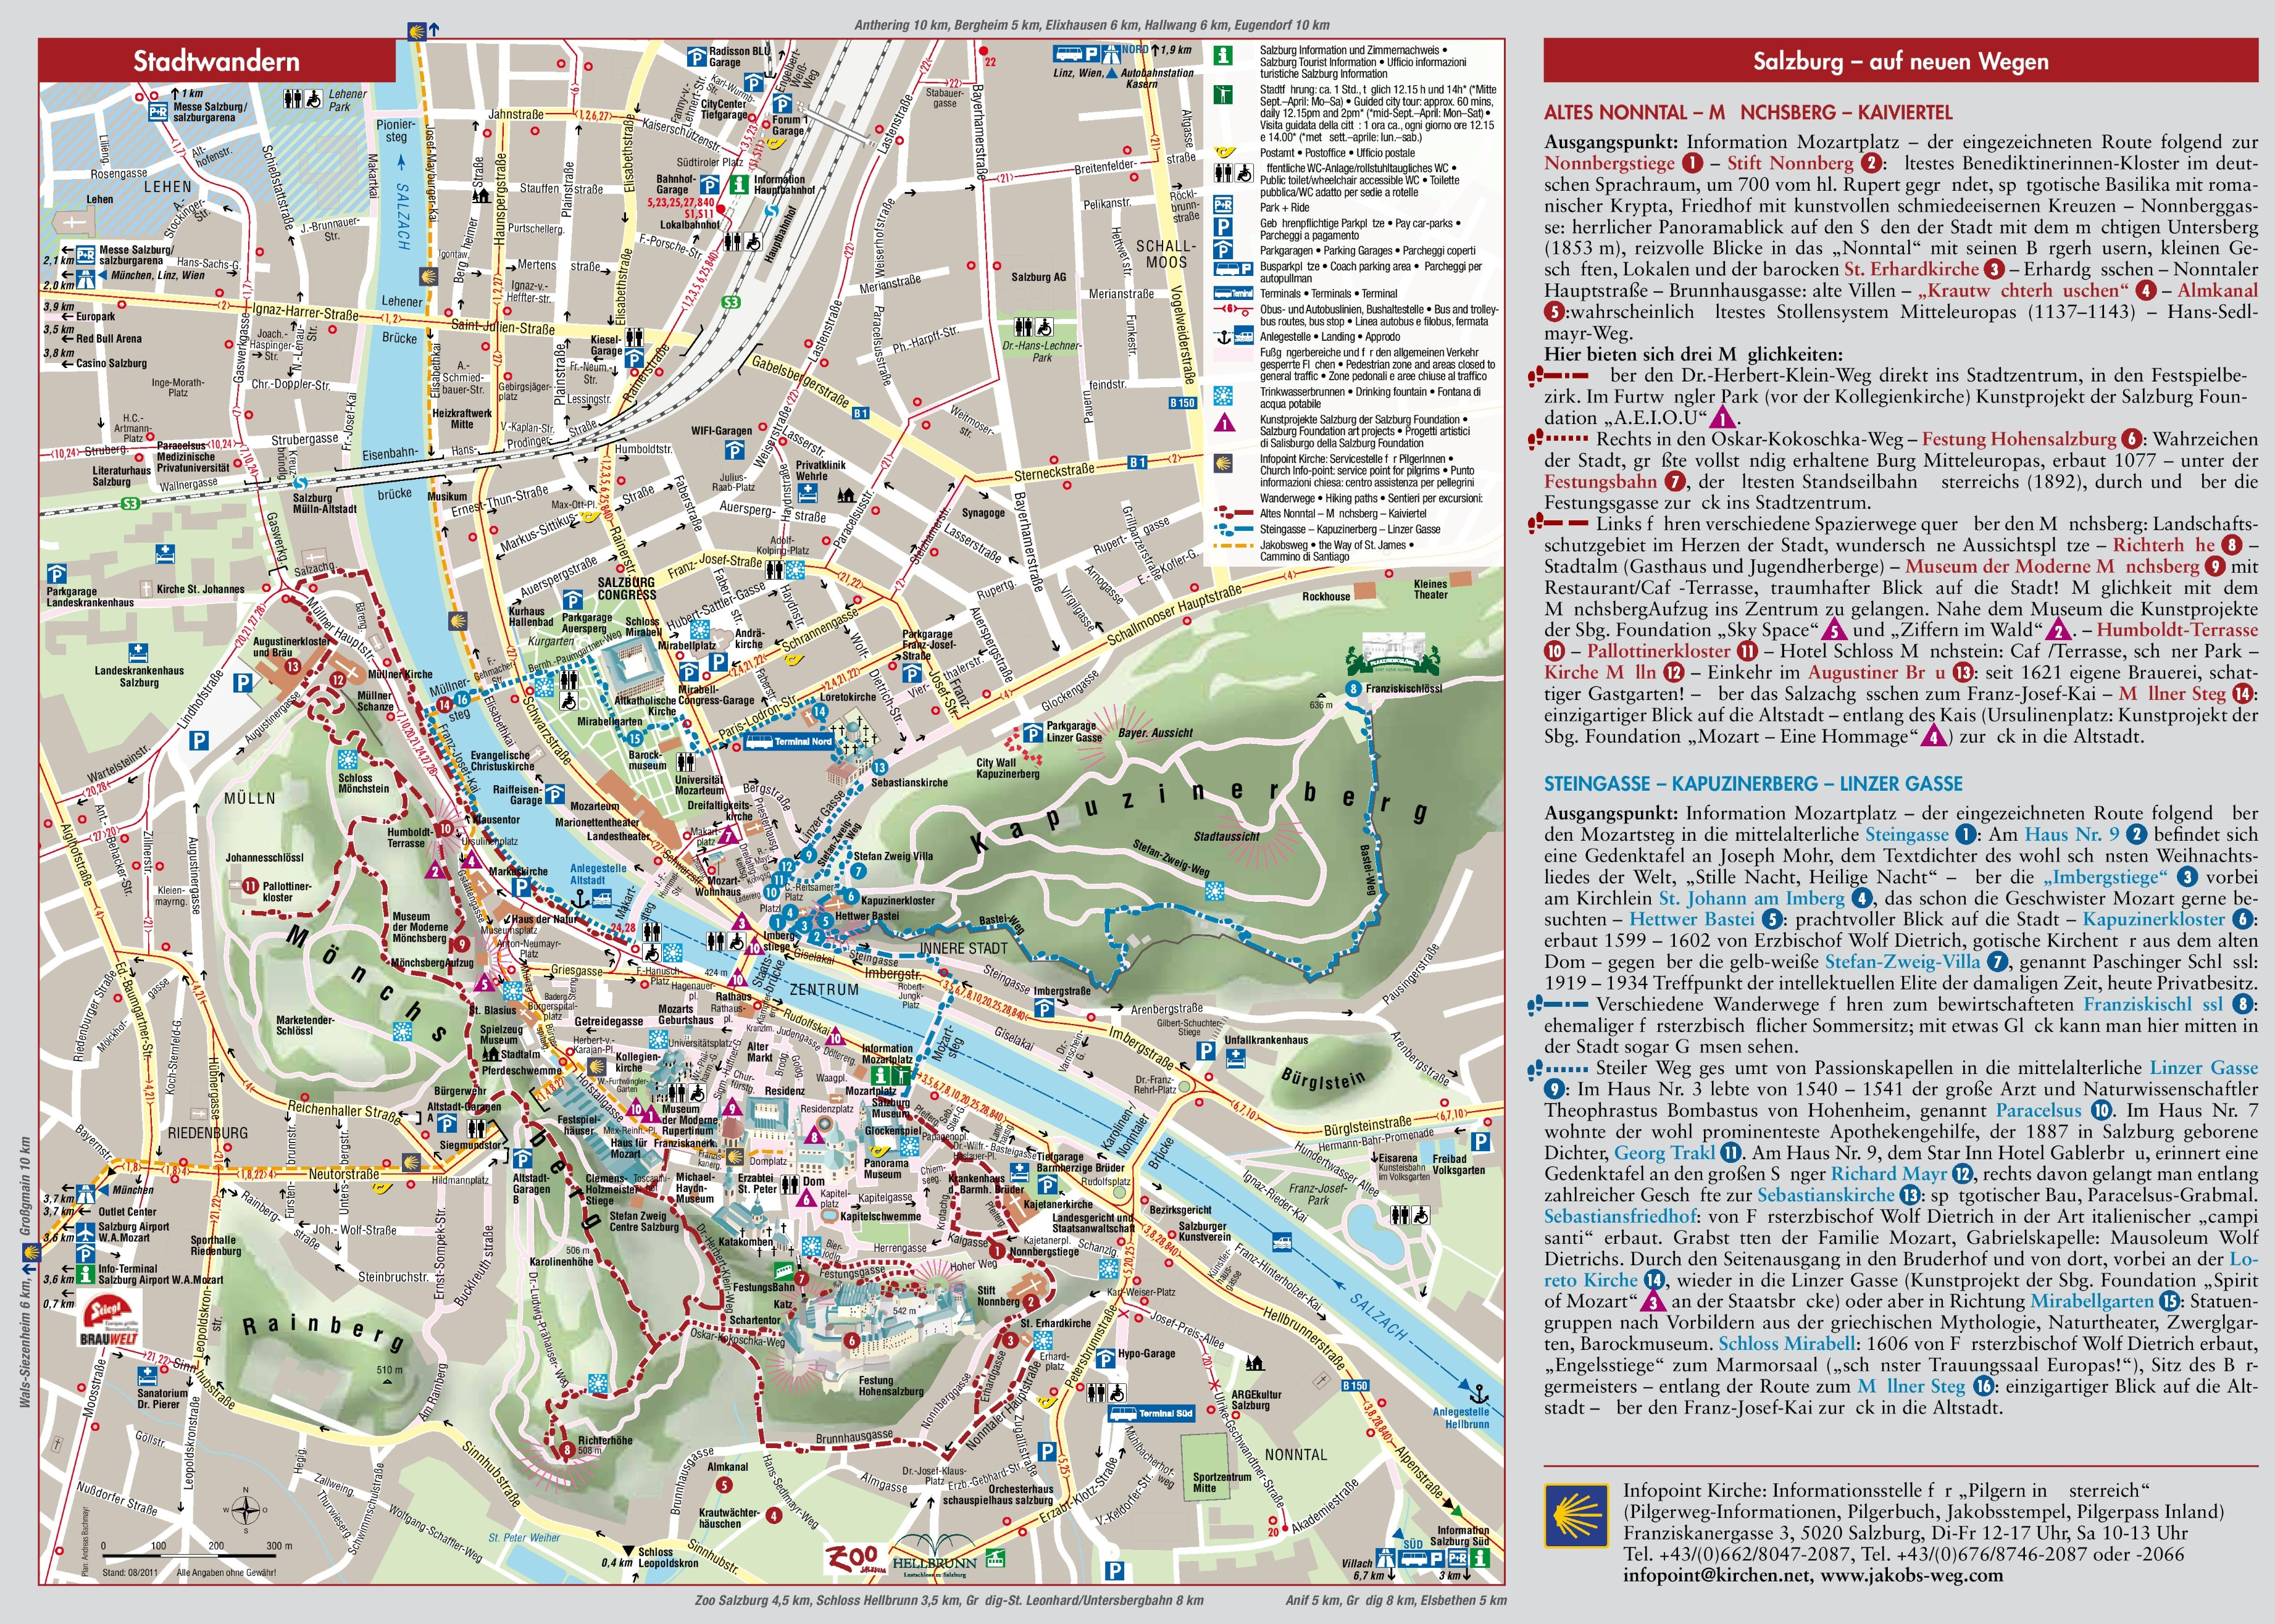 Salzburg sightseeing map salzburg sightseeing map gumiabroncs Images